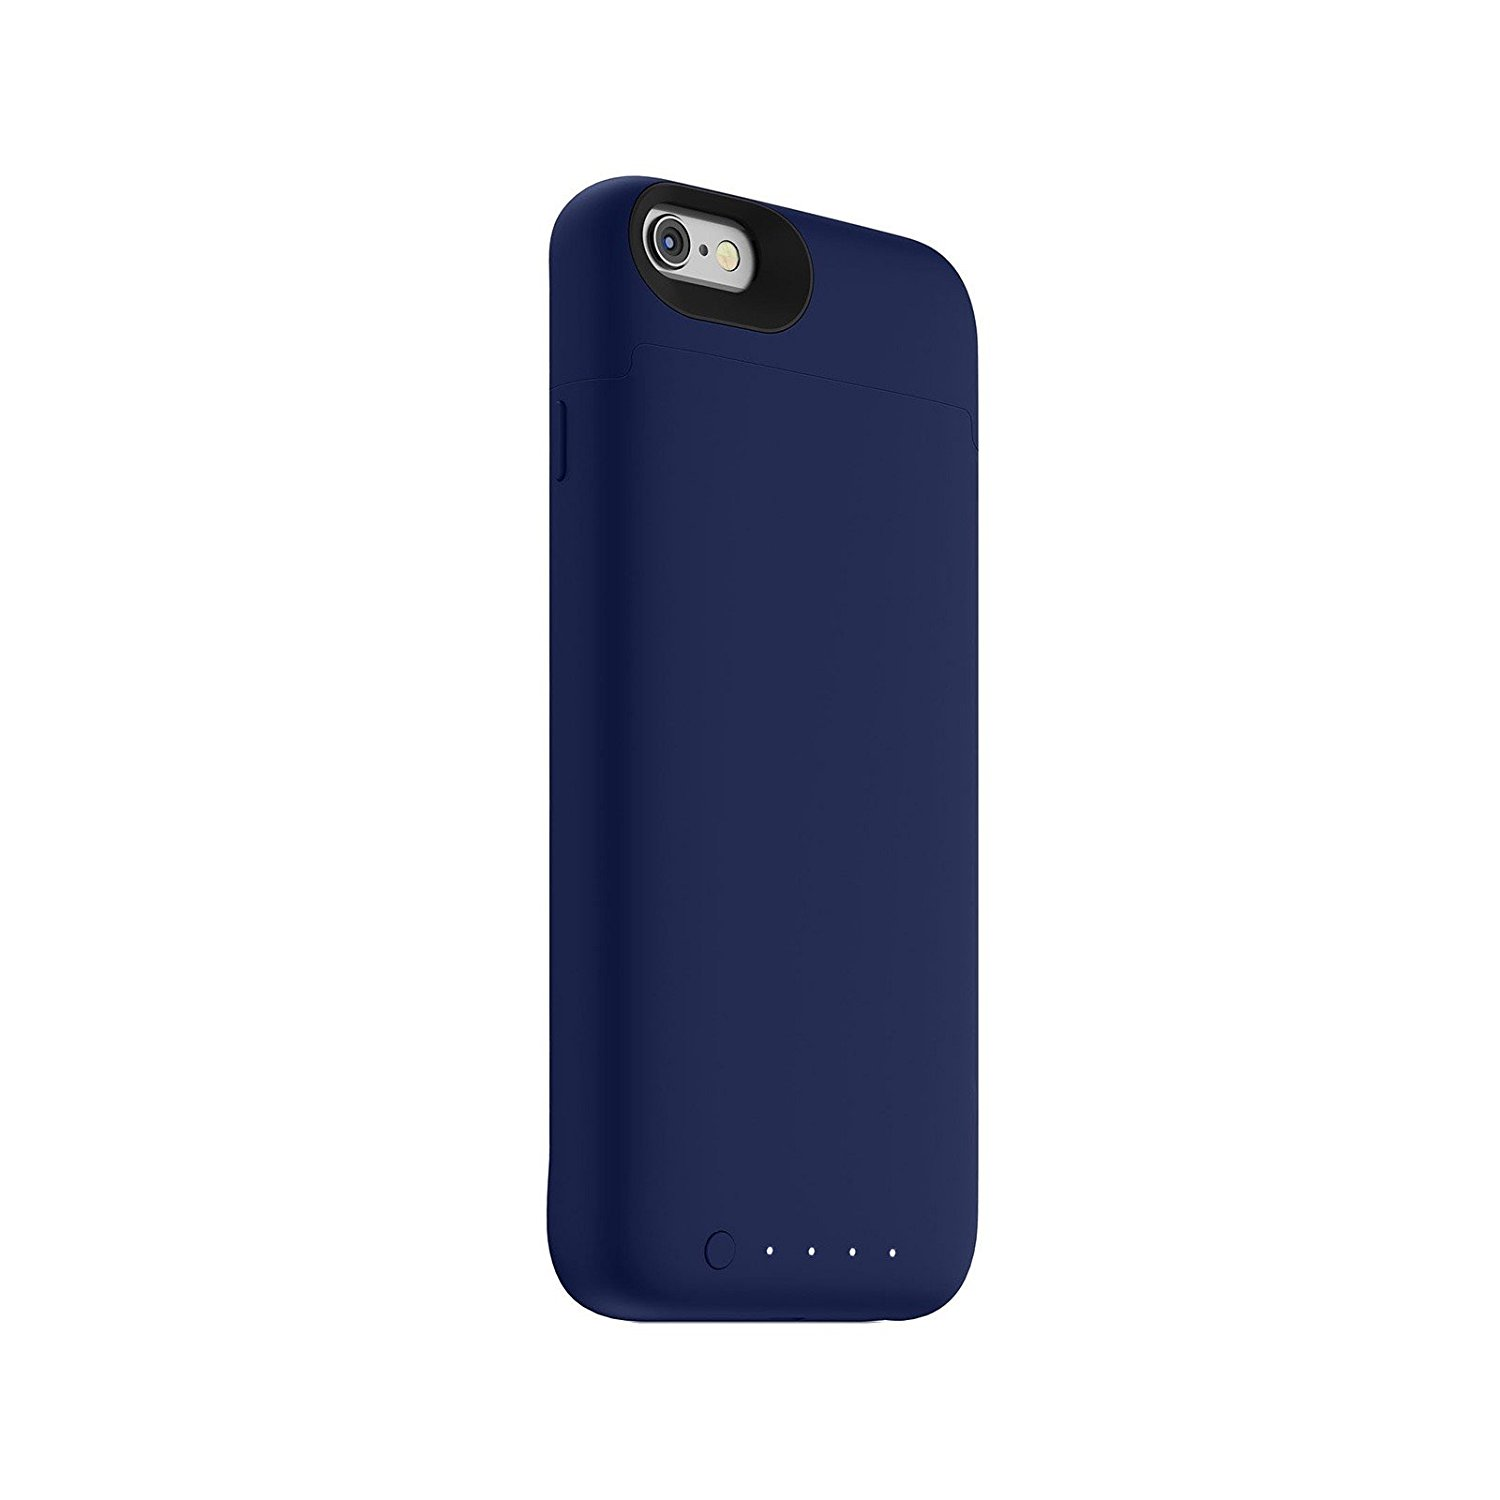 quality design 42f0c 06ca5 mophie juice pack reserve - Lightweight and Compact Mobile Protective  Battery Case for iPhone 6/6s - Blue (Certified Refurbished) - CHARGE WITH  POWER